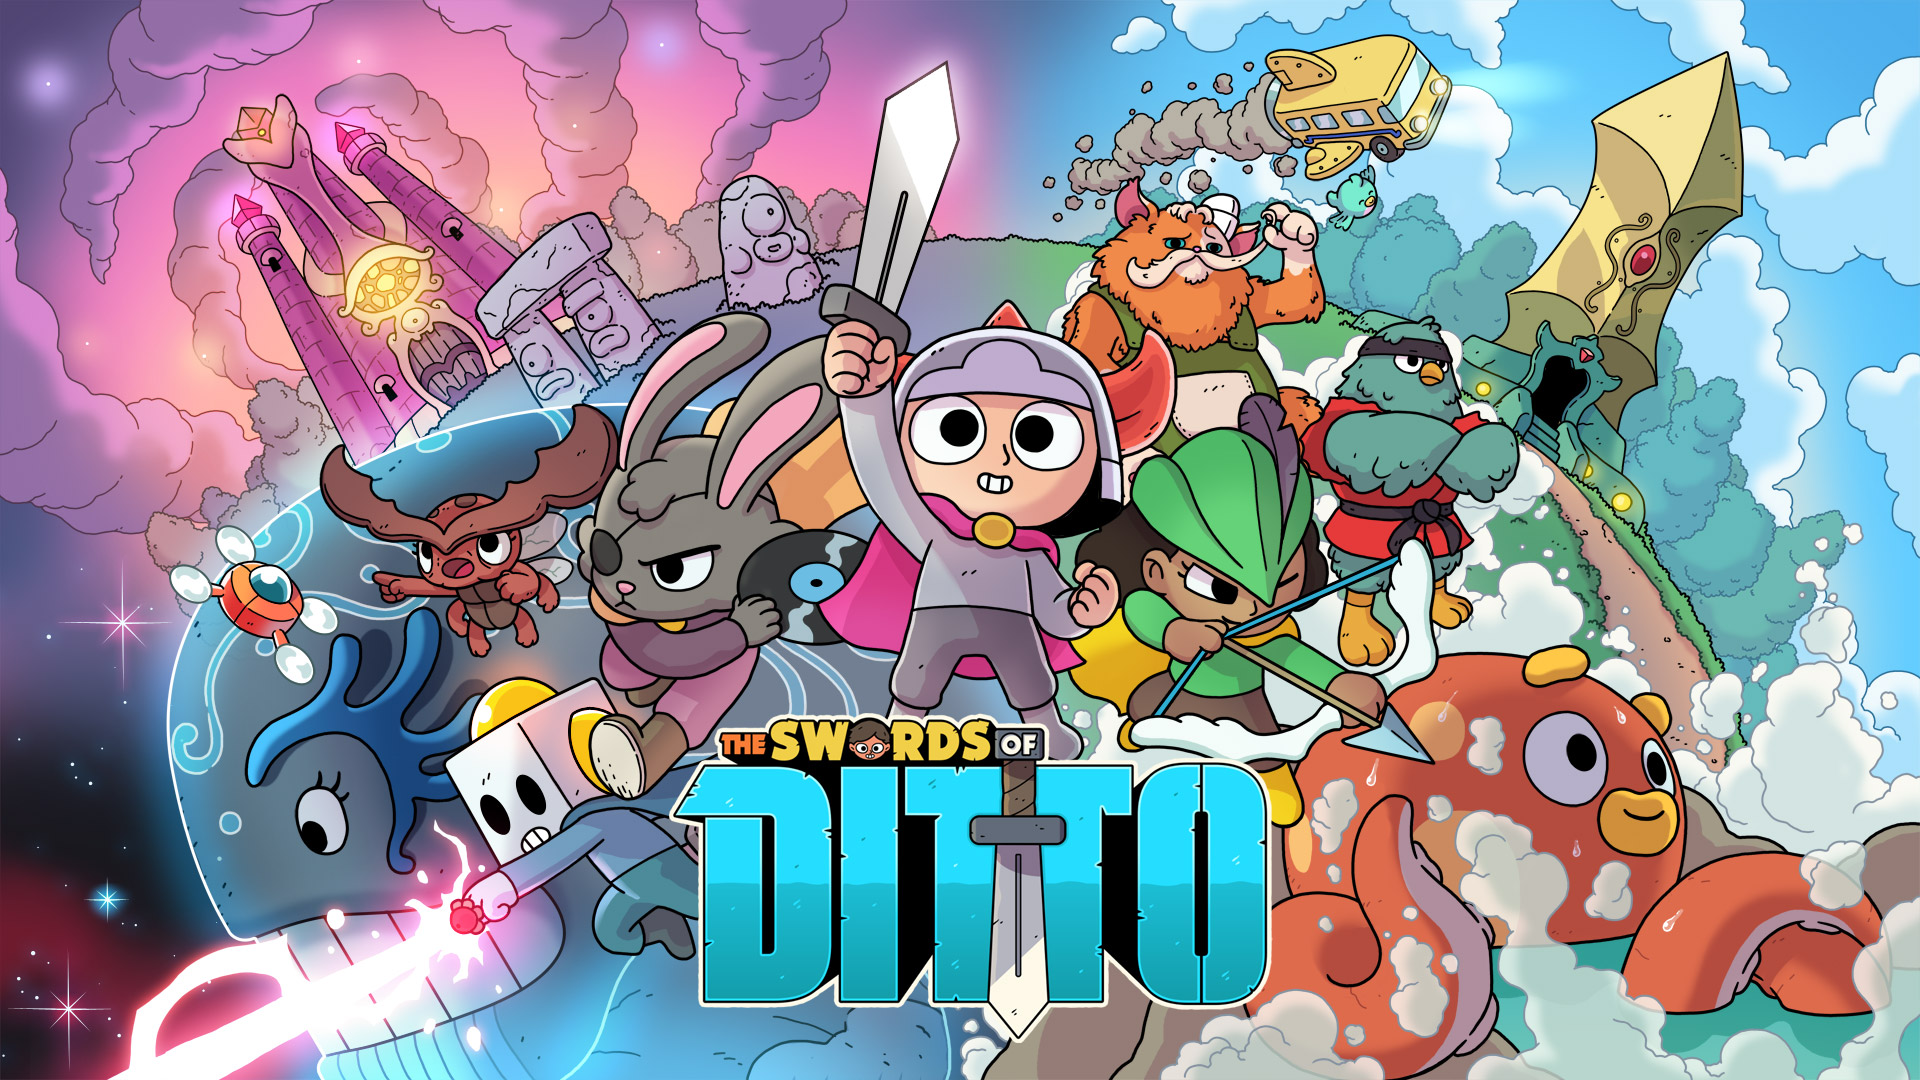 Free The Swords of Ditto Wallpaper in 1920x1080